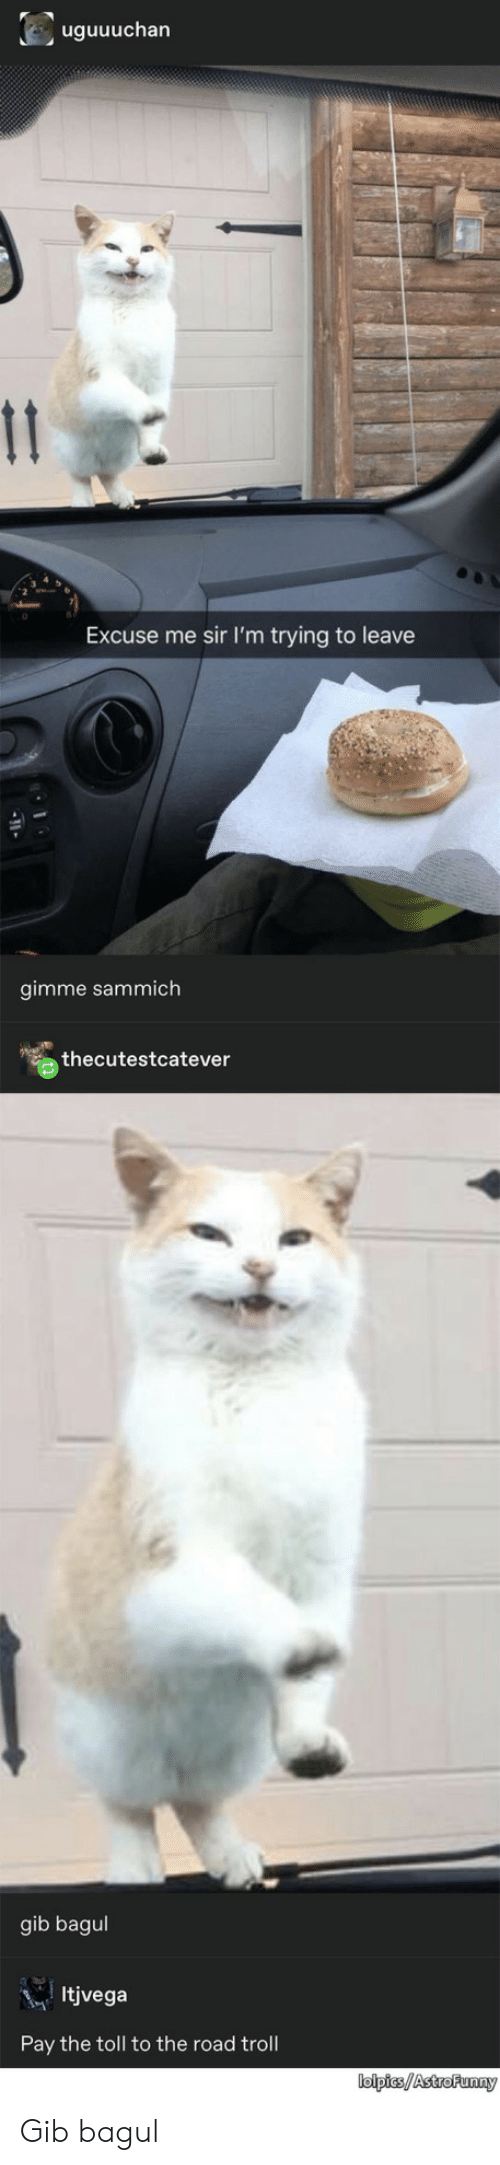 sammich: uguuuchan  11  Excuse me sir I'm trying to leave  gimme sammich  thecutestcatever  gib bagul  Itjvega  Pay the toll to the road troll  lolpies/AstroFunny Gib bagul